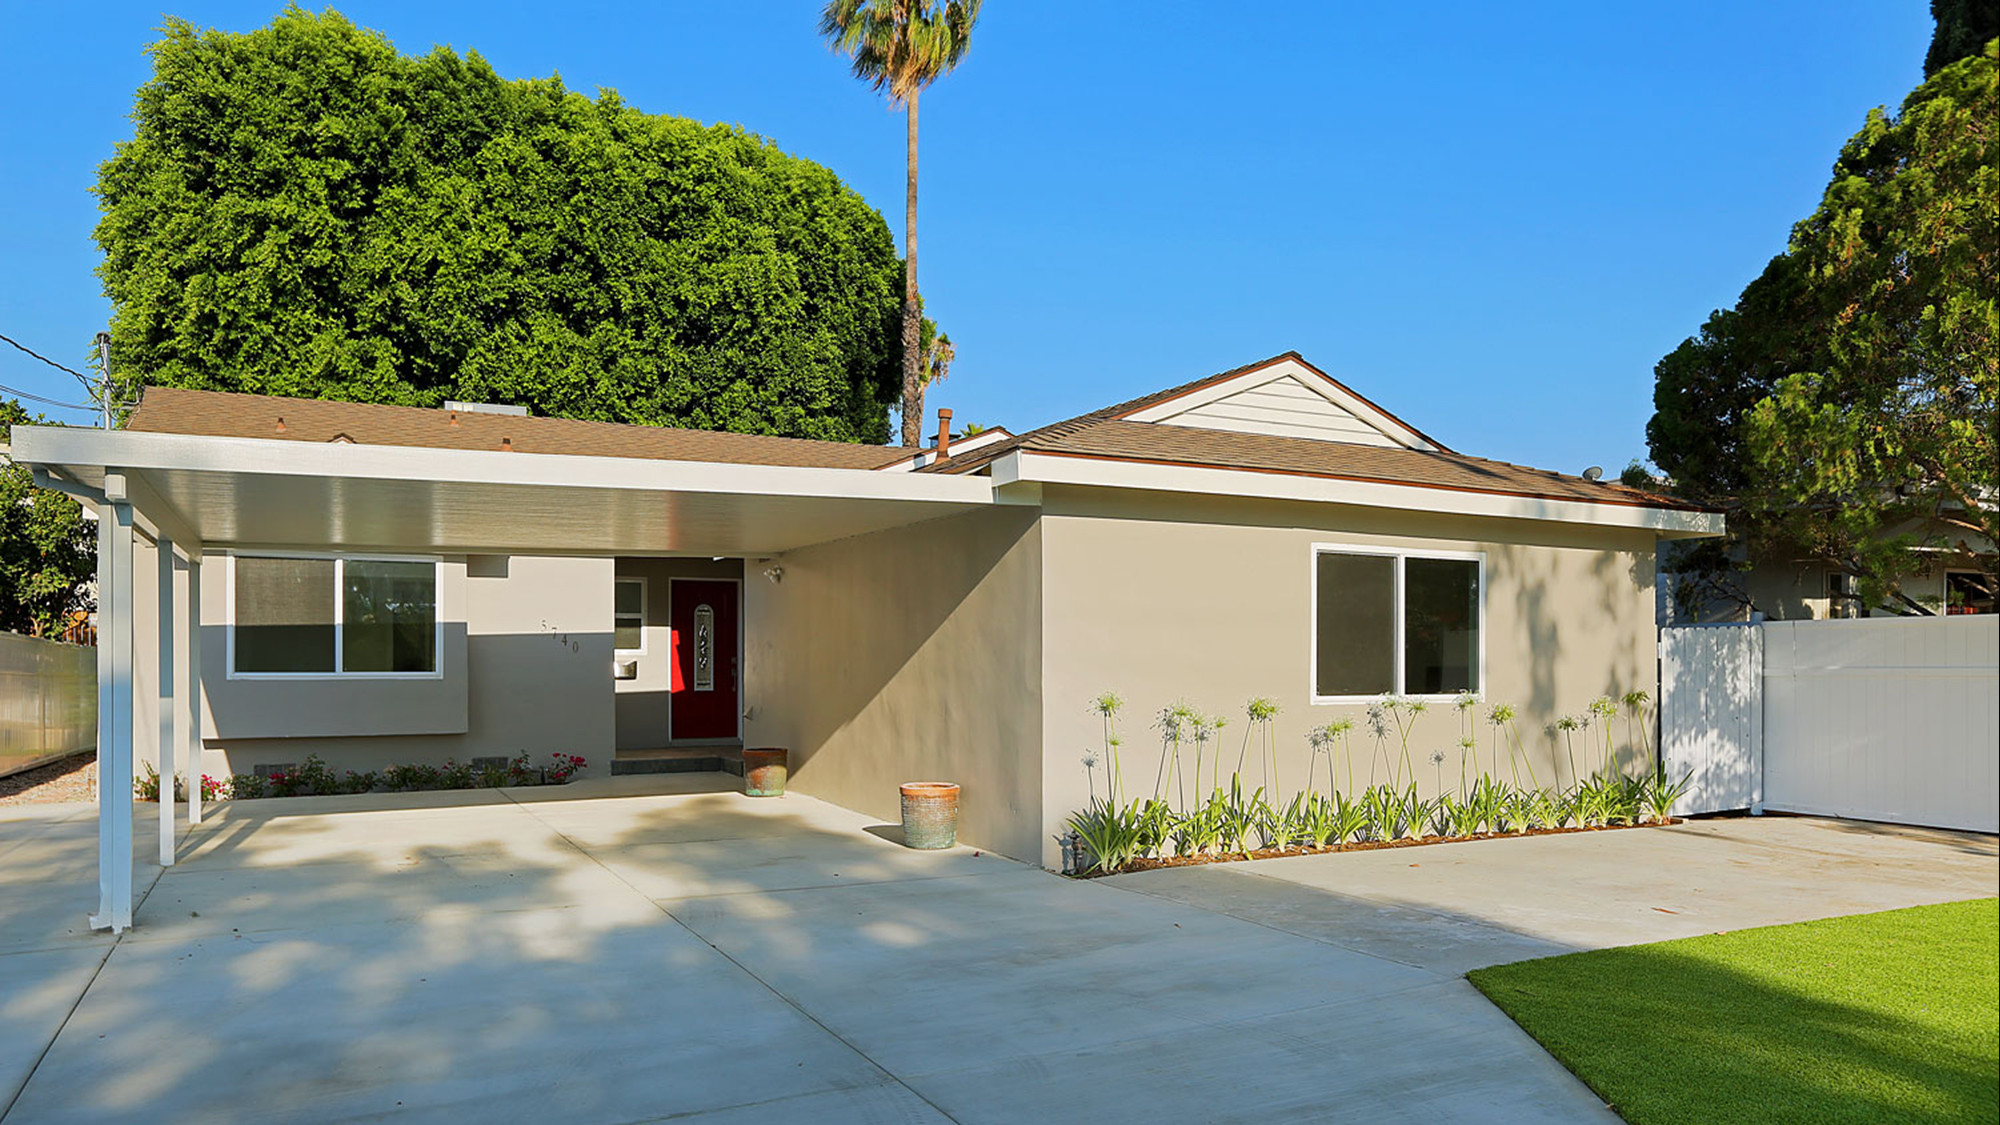 2 to 4 bedroom homes in los angeles county for about - 8 bedroom homes for sale in los angeles ...